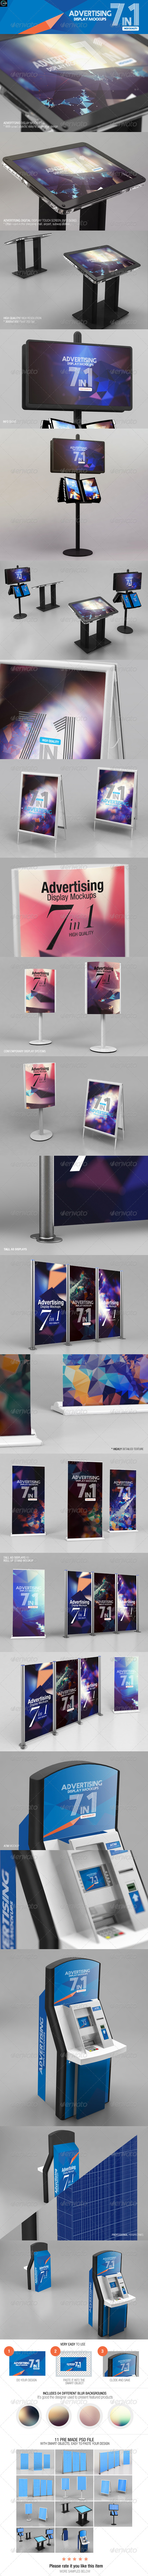 GraphicRiver Advertising Display Mockups 7890025